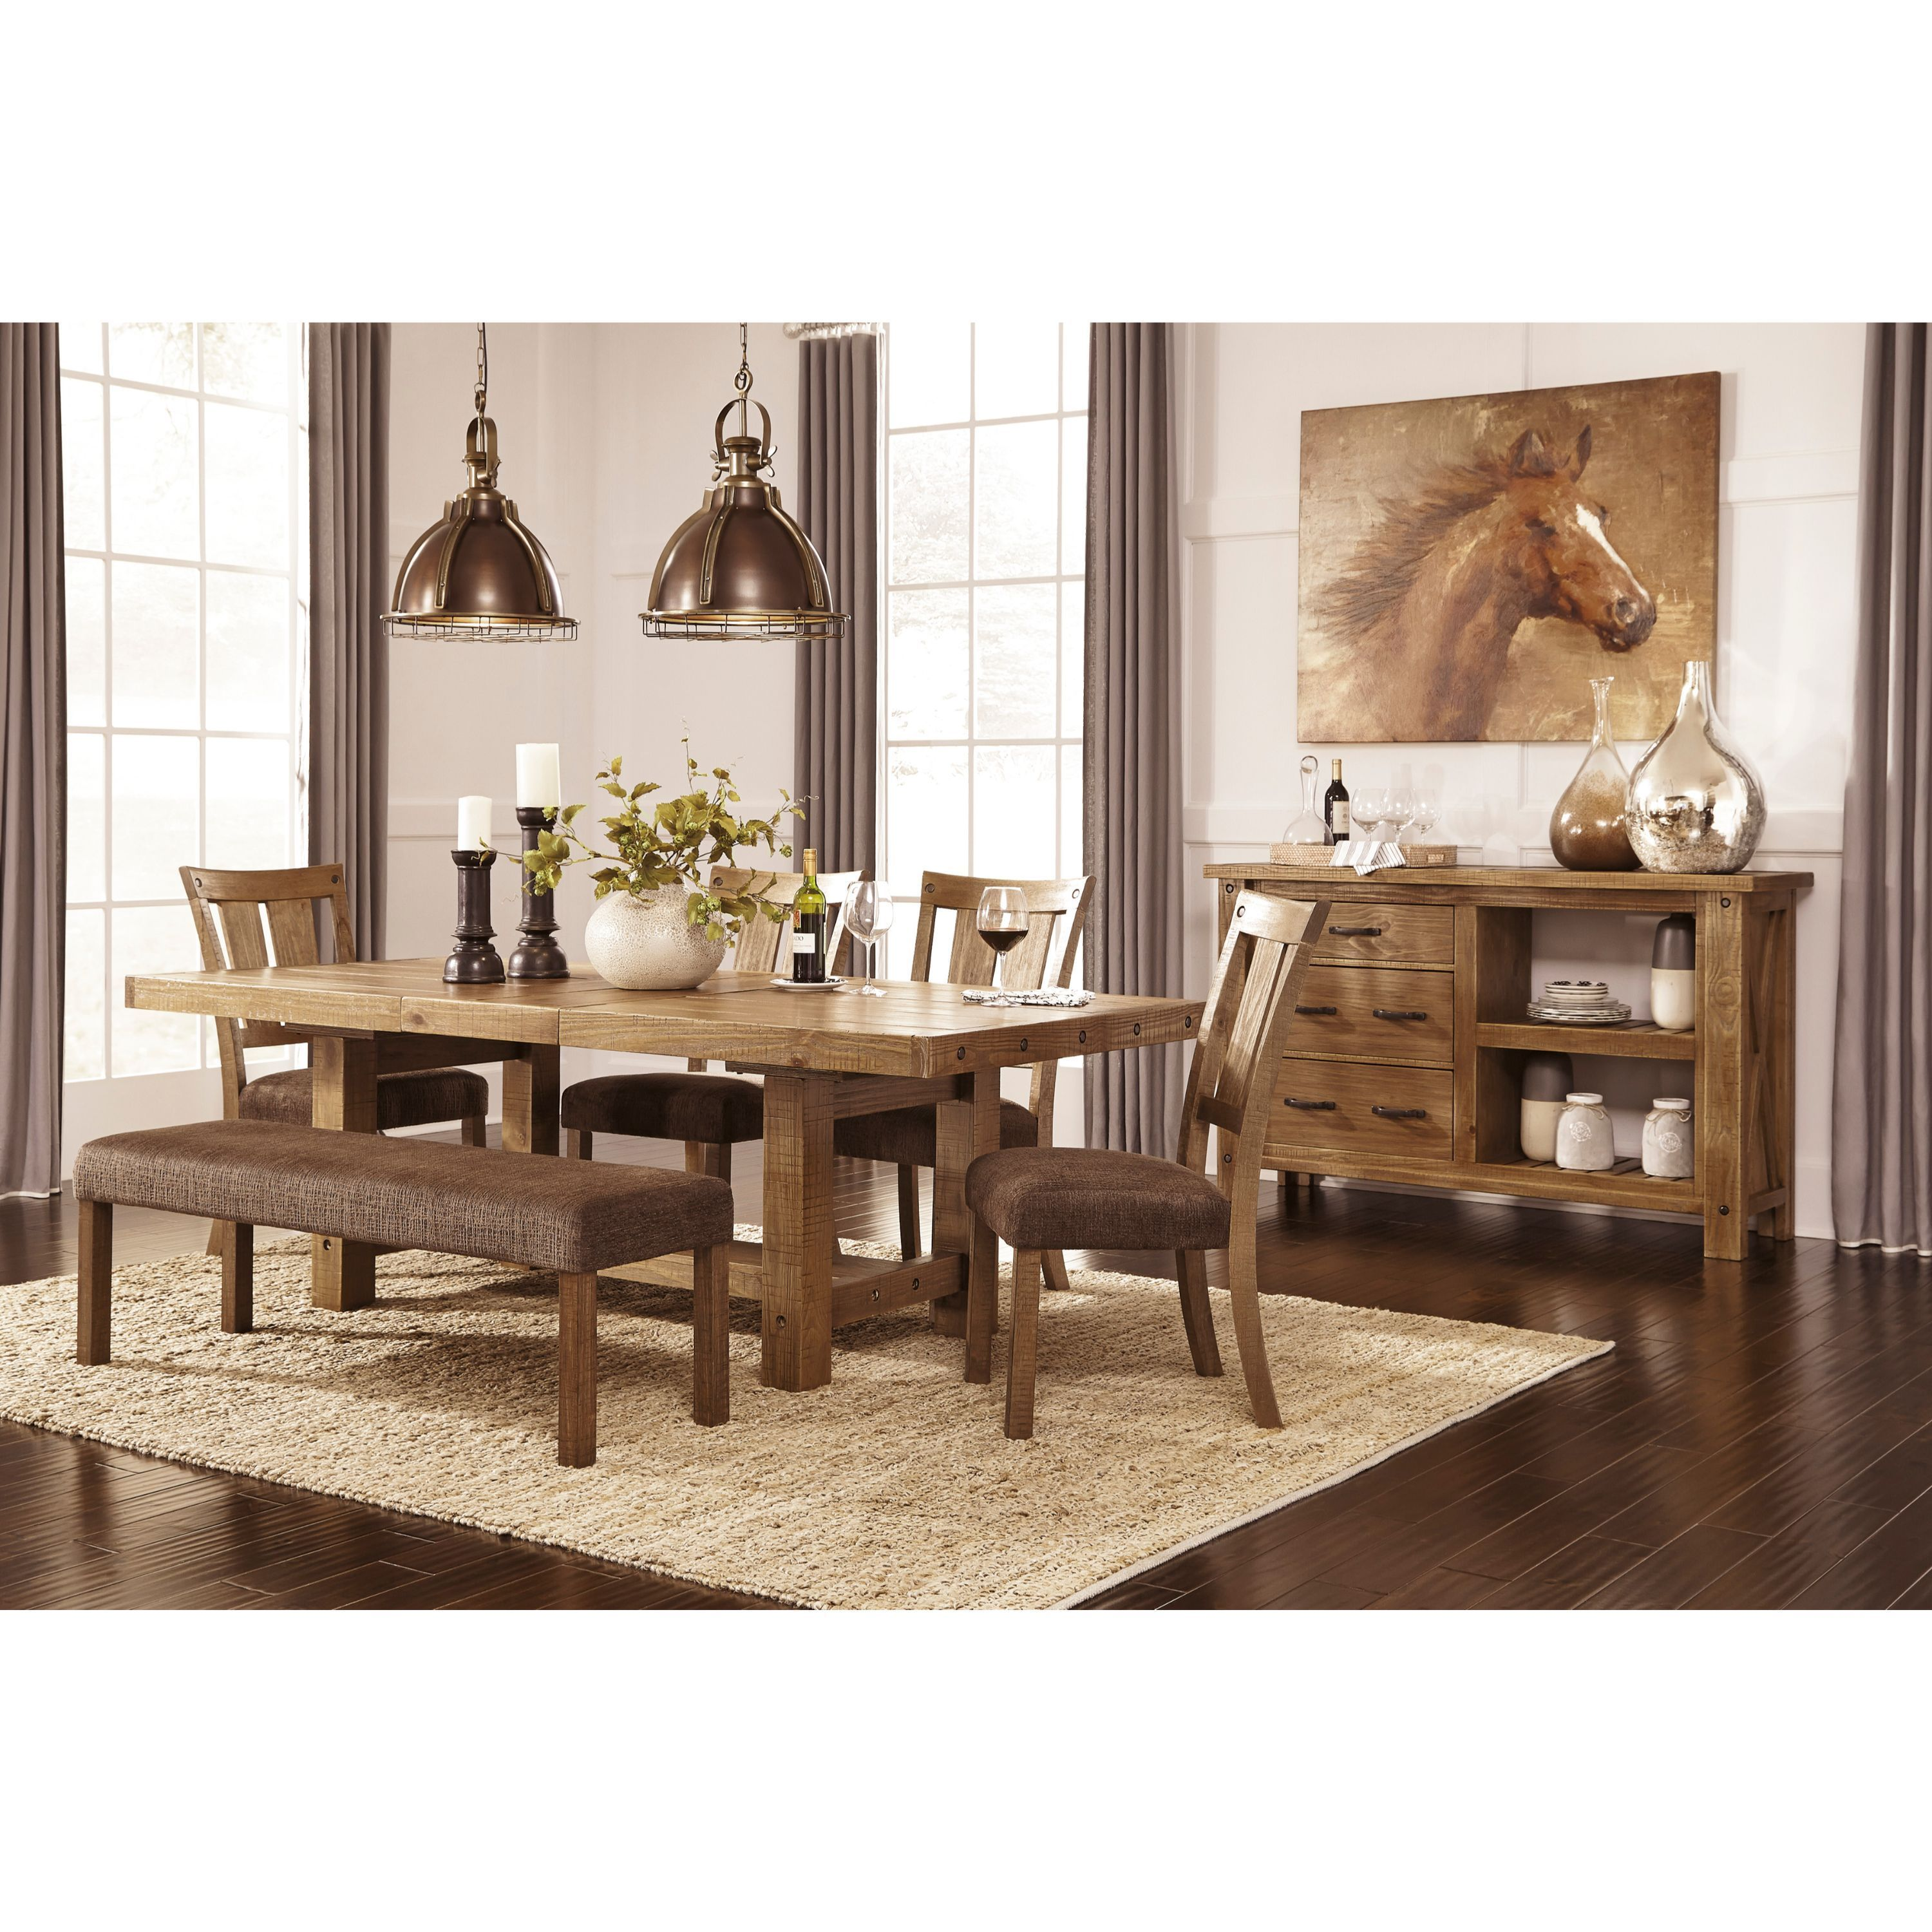 Signature Design By Ashley Tamilo Brown Large 4 Piece Dining Room Set